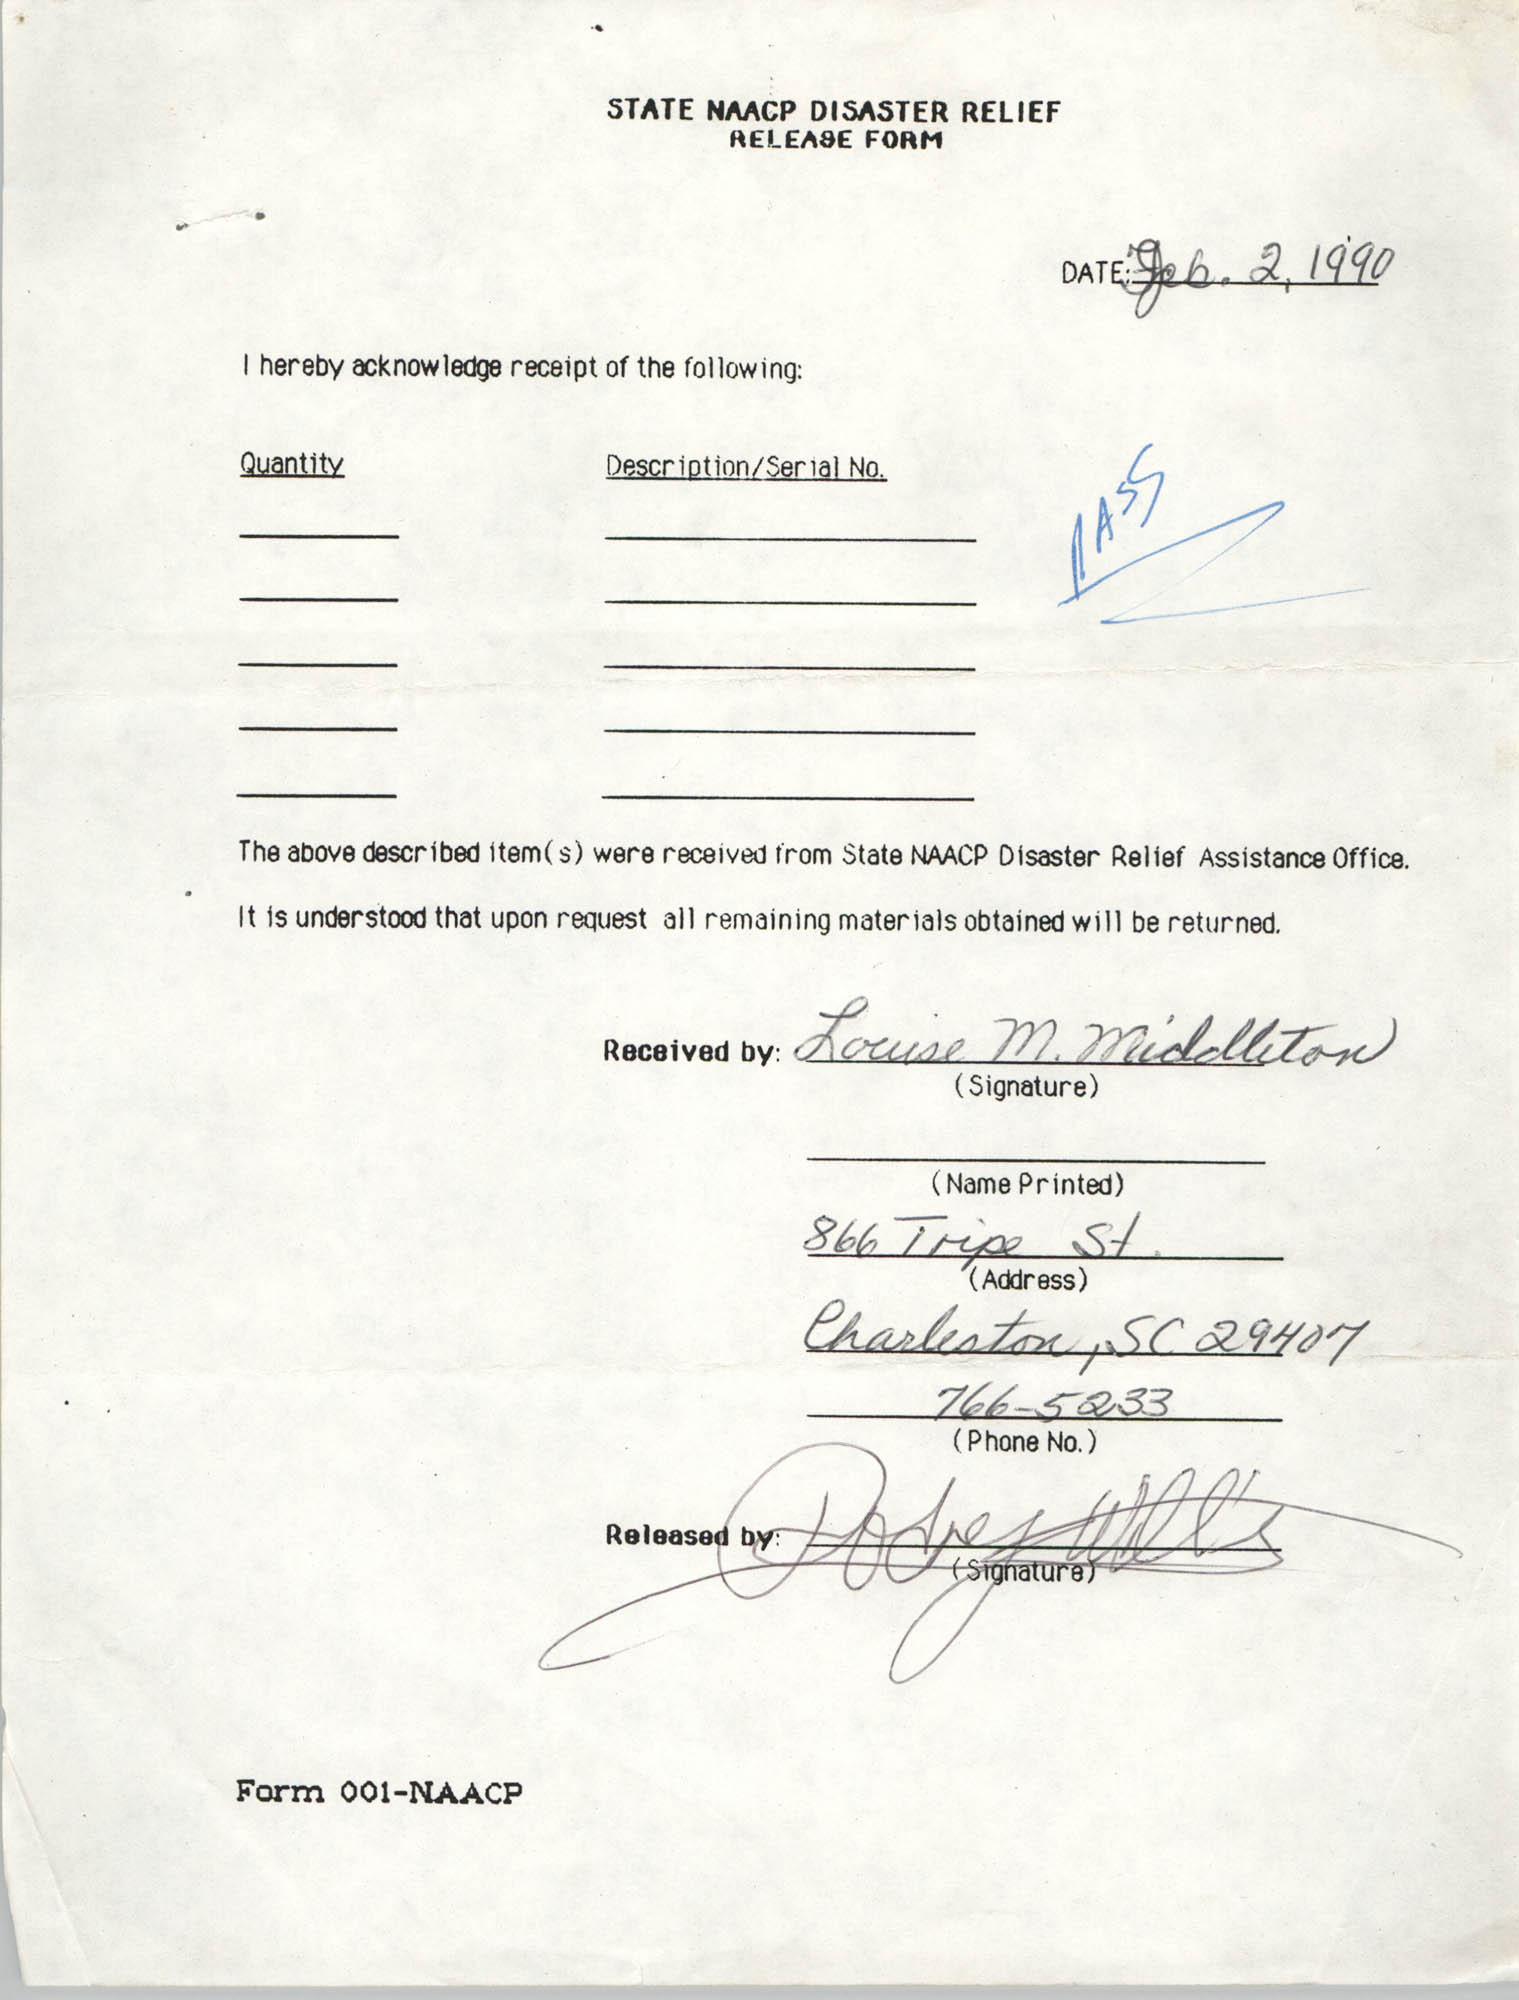 State NAACP Disaster Relief, Hurricane Huge Release Form, 1989, Page 9